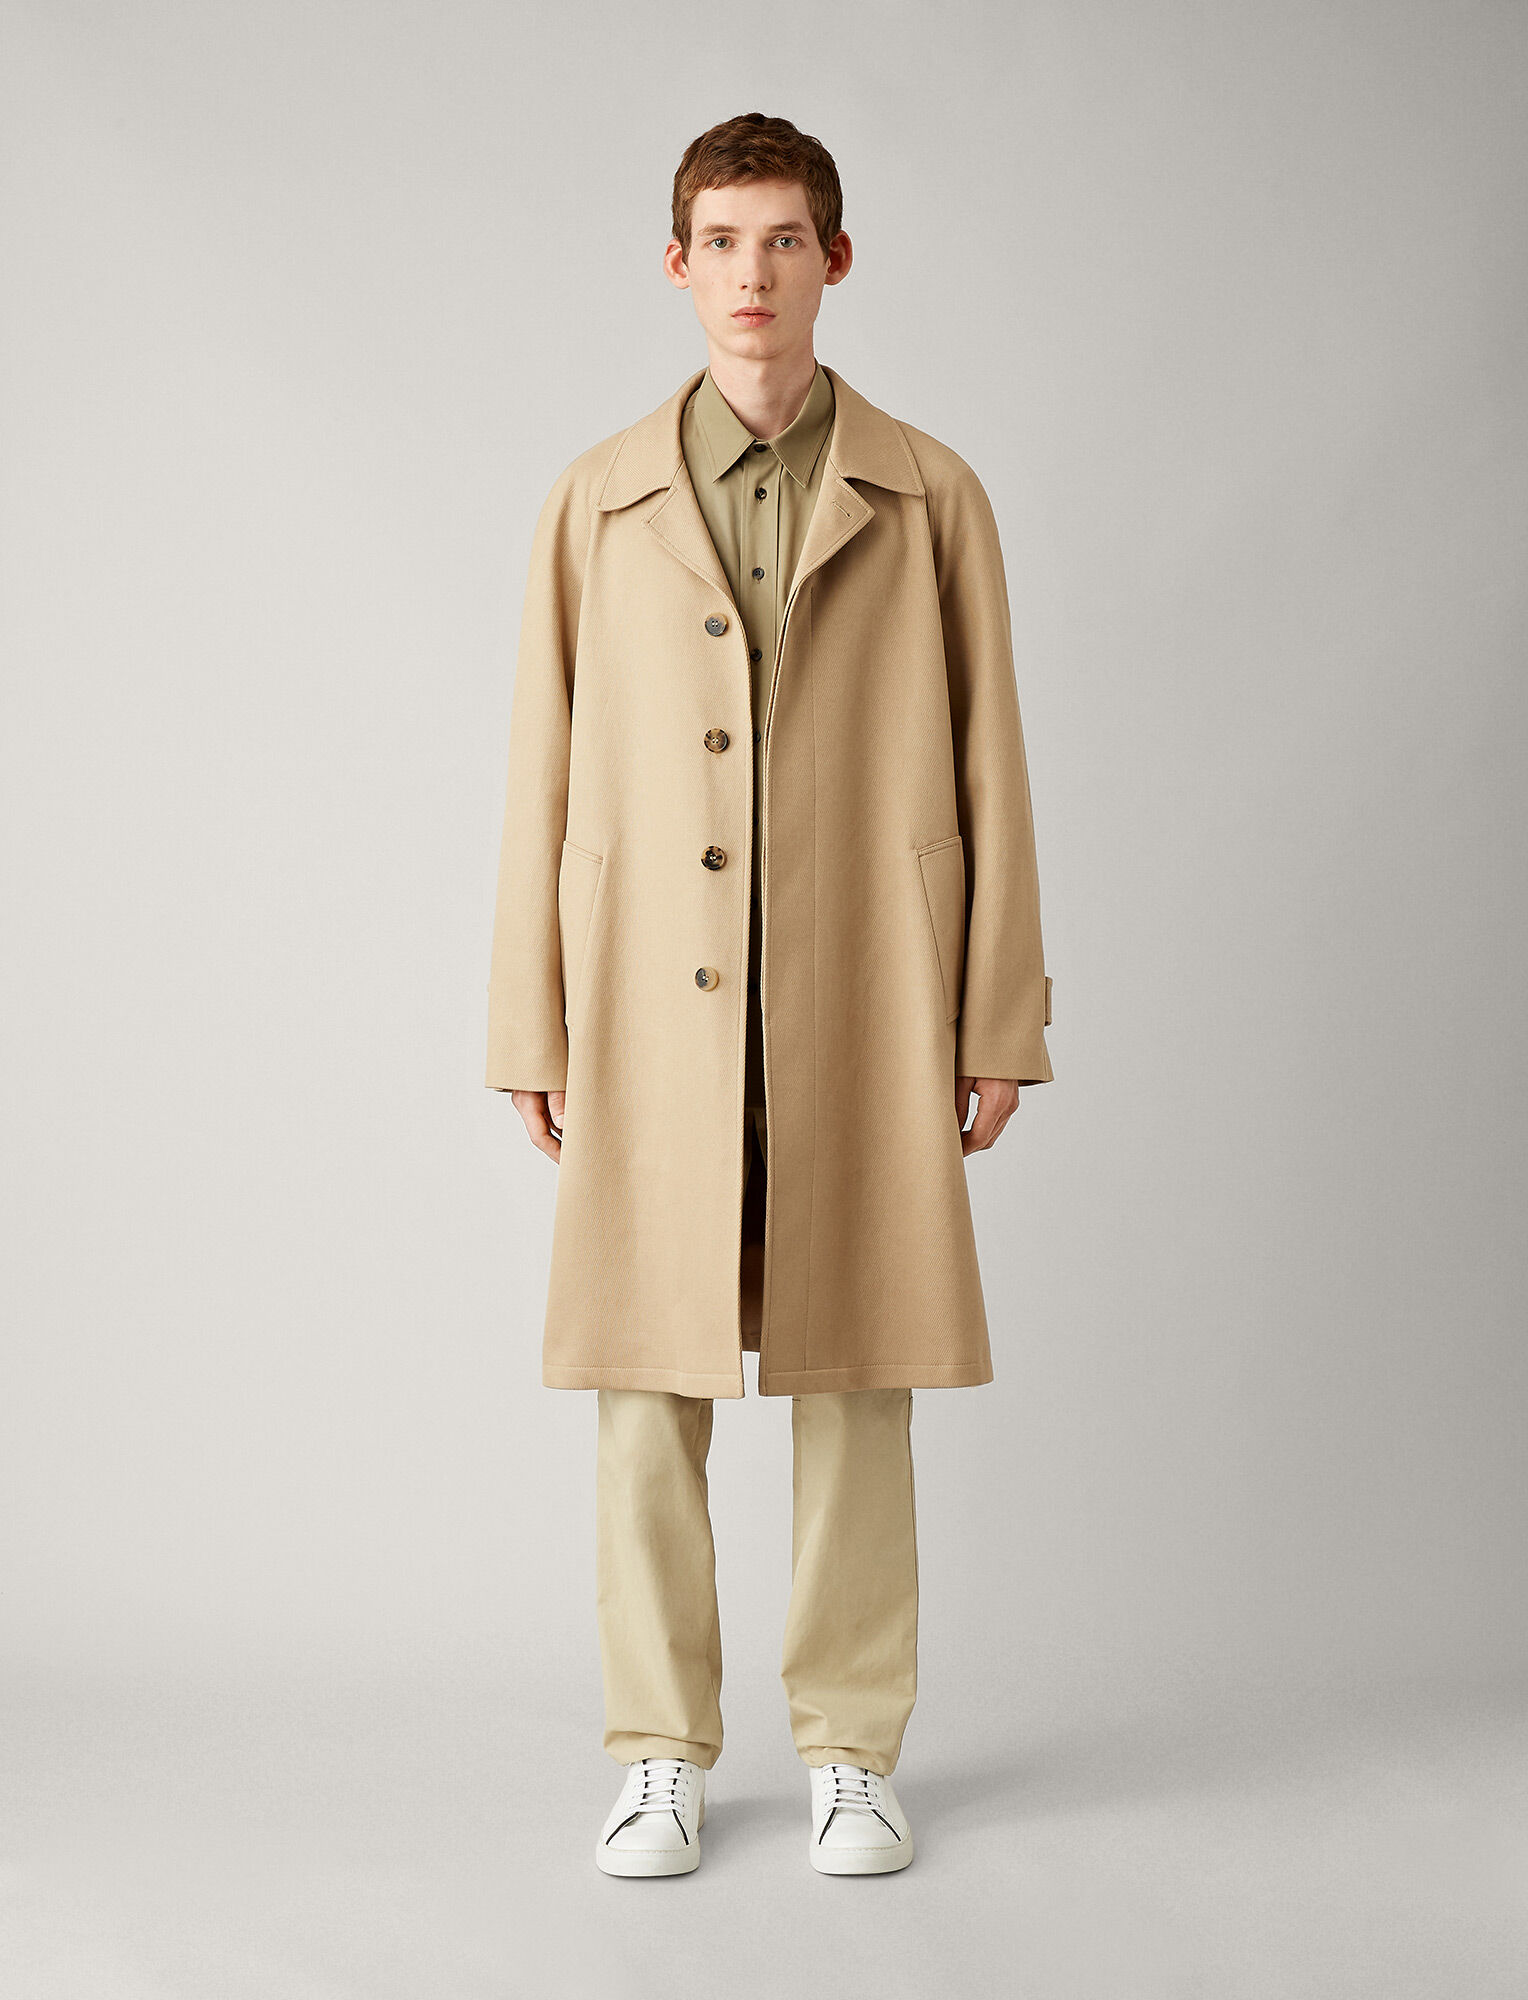 Joseph, Bryan Tricotine Cotton Coat, in CAMEL